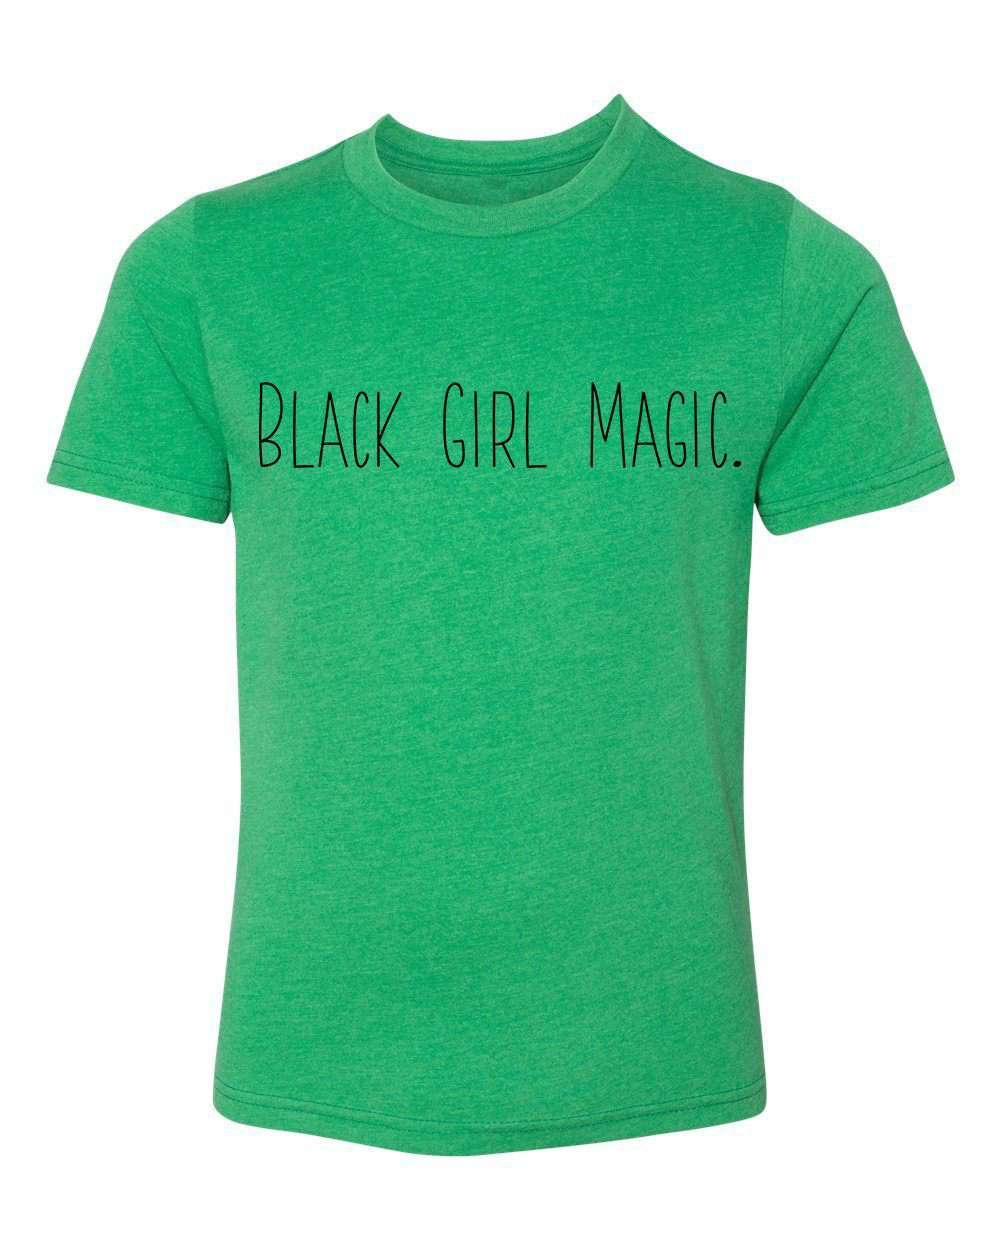 Shirt - Black Girl Magic T-shirt, Melanin Shirts For Girls